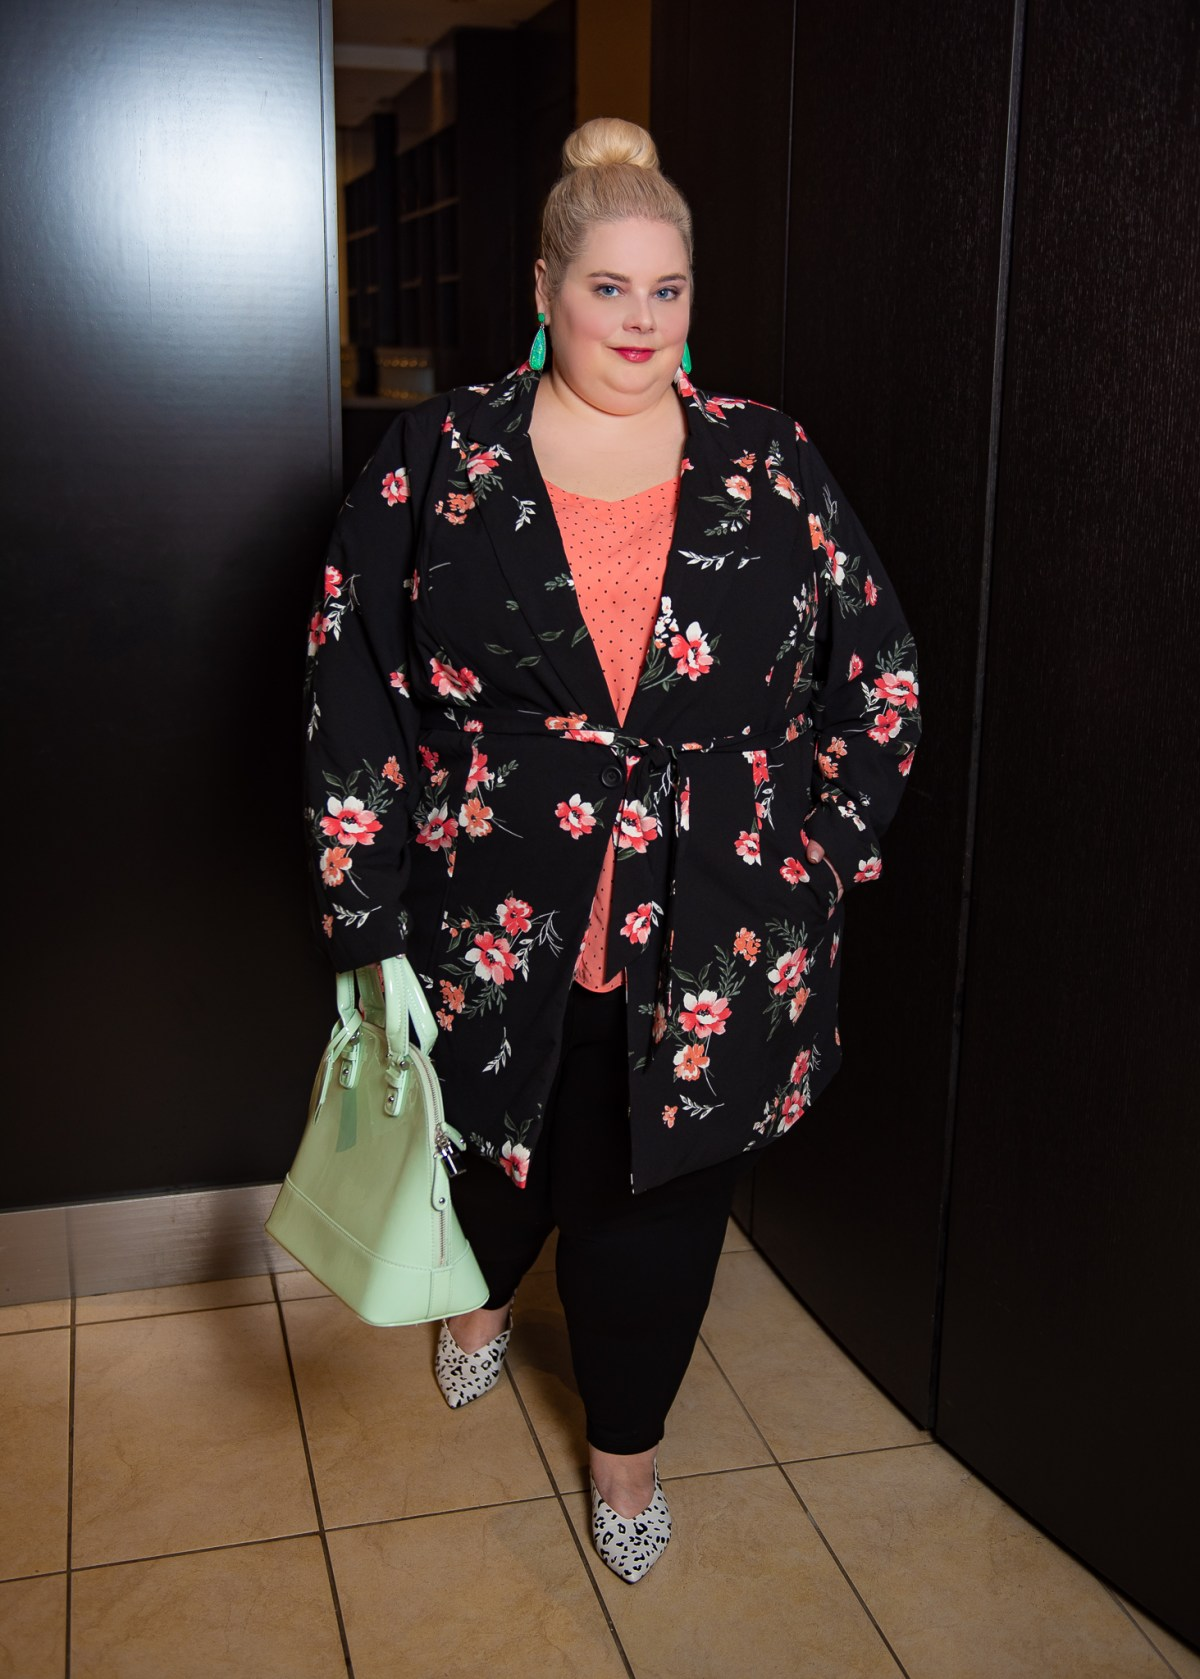 Working With Torrid - Professional